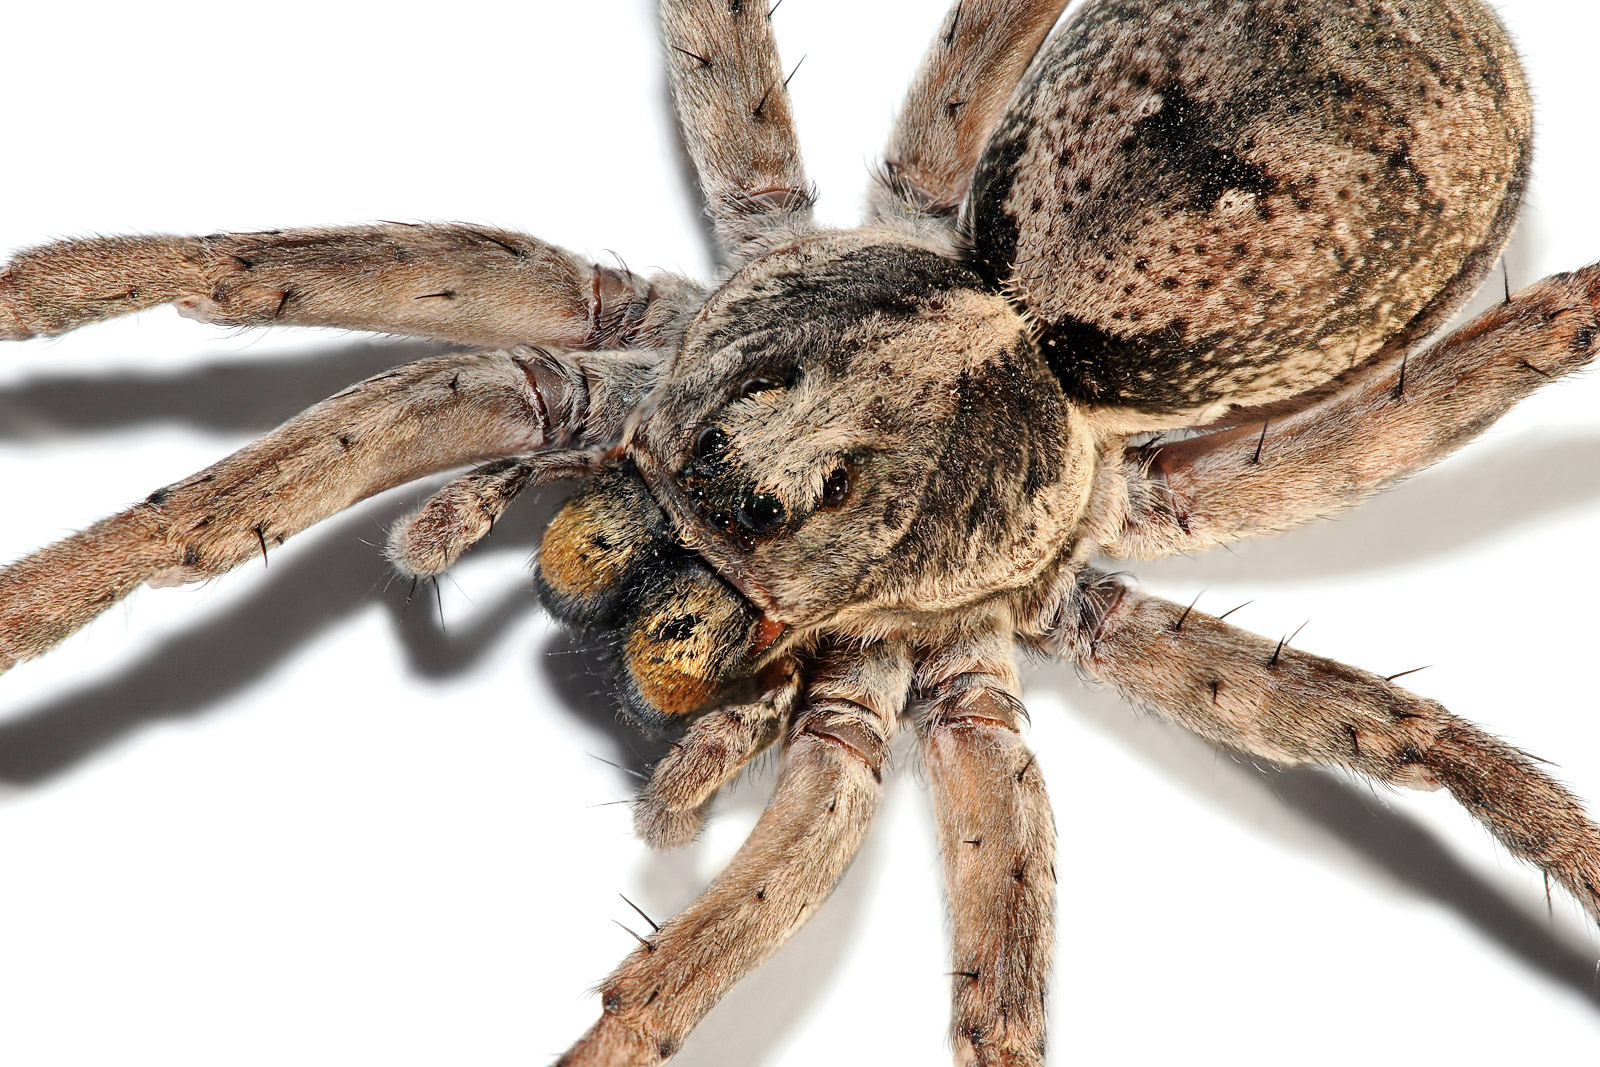 http://upload.wikimedia.org/wikipedia/commons/7/73/Wolf_spider_focus_bracket02.jpg